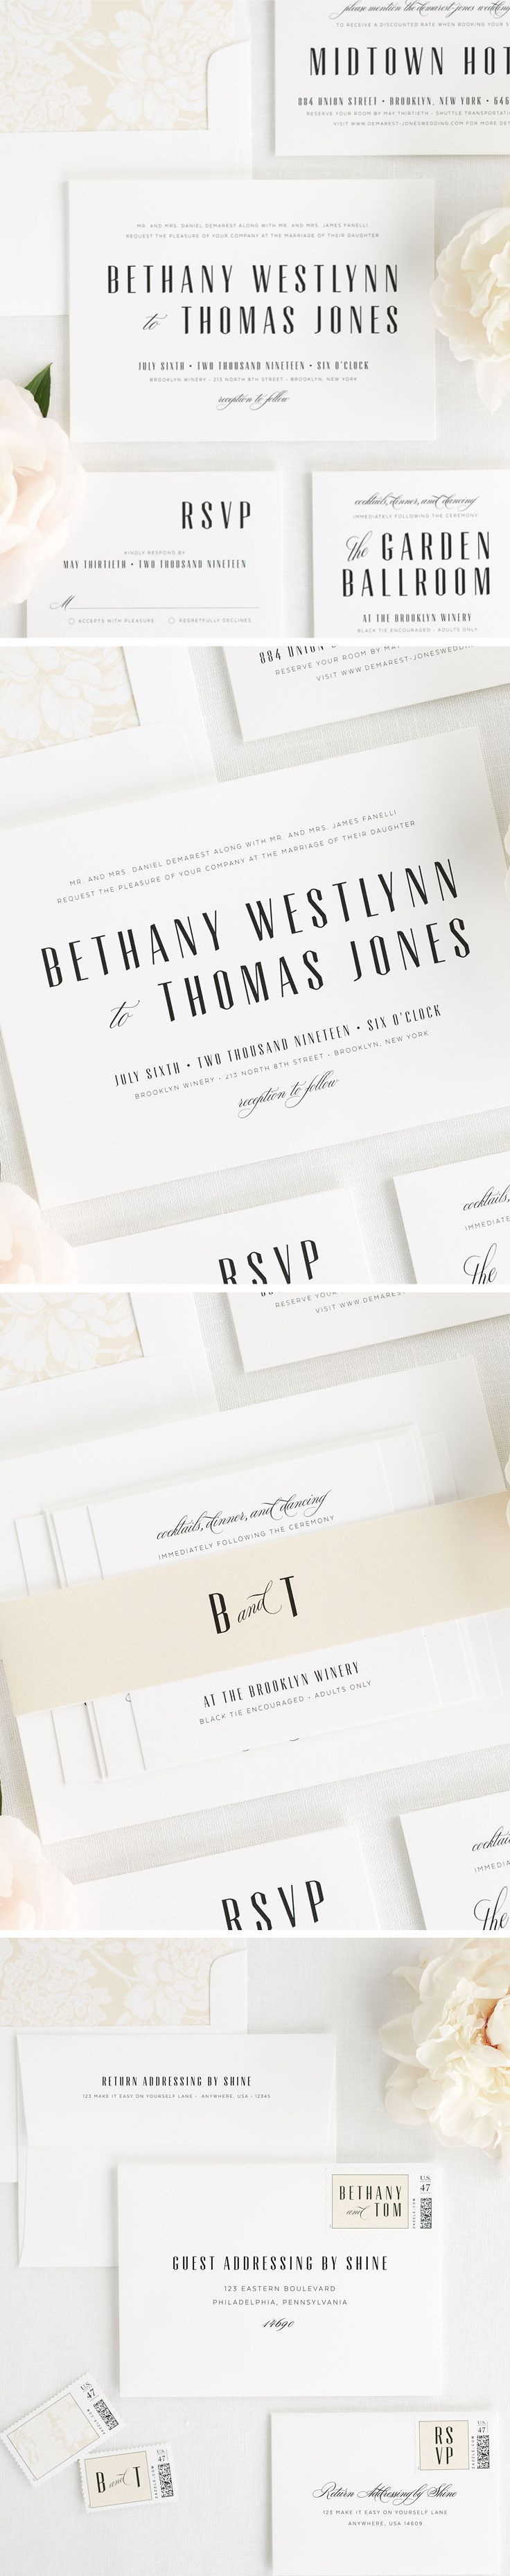 311 best Wedding Stationery images on Pinterest | 15 years, Bling ...